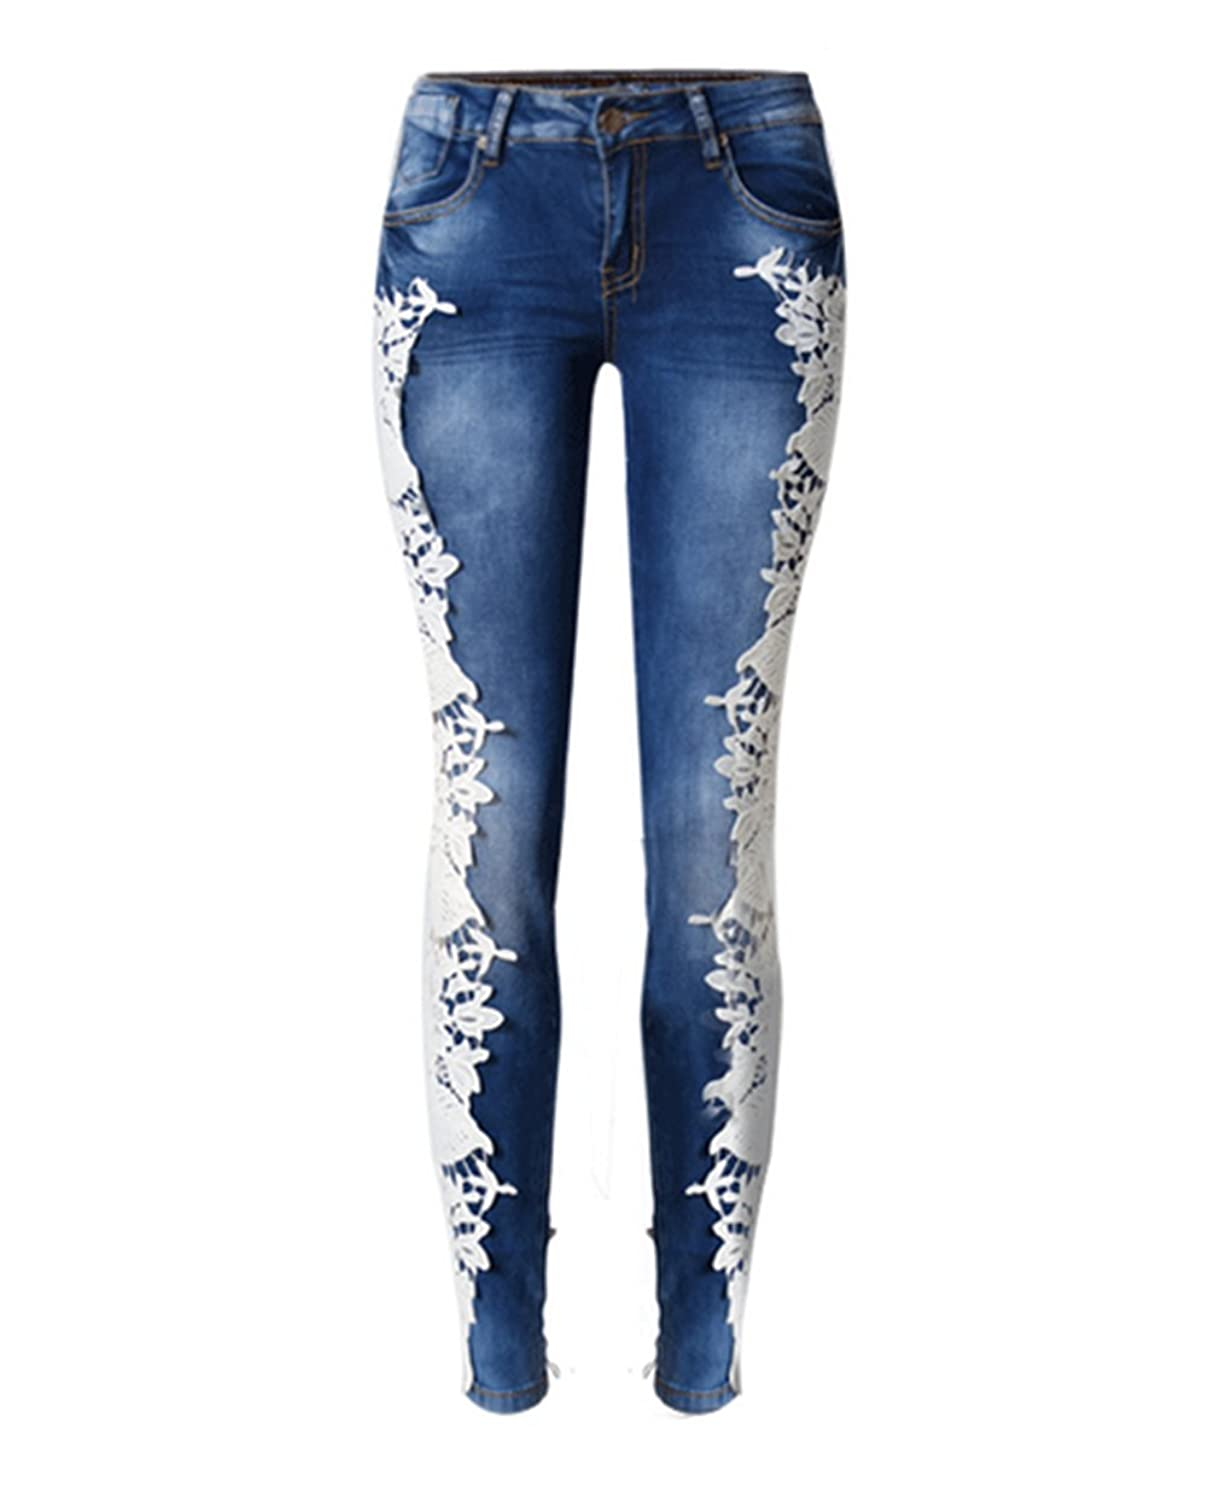 Sexy Women Girl Destroyed Grocet Lace Jeans Ripped Washed Cuff Denim Trousers